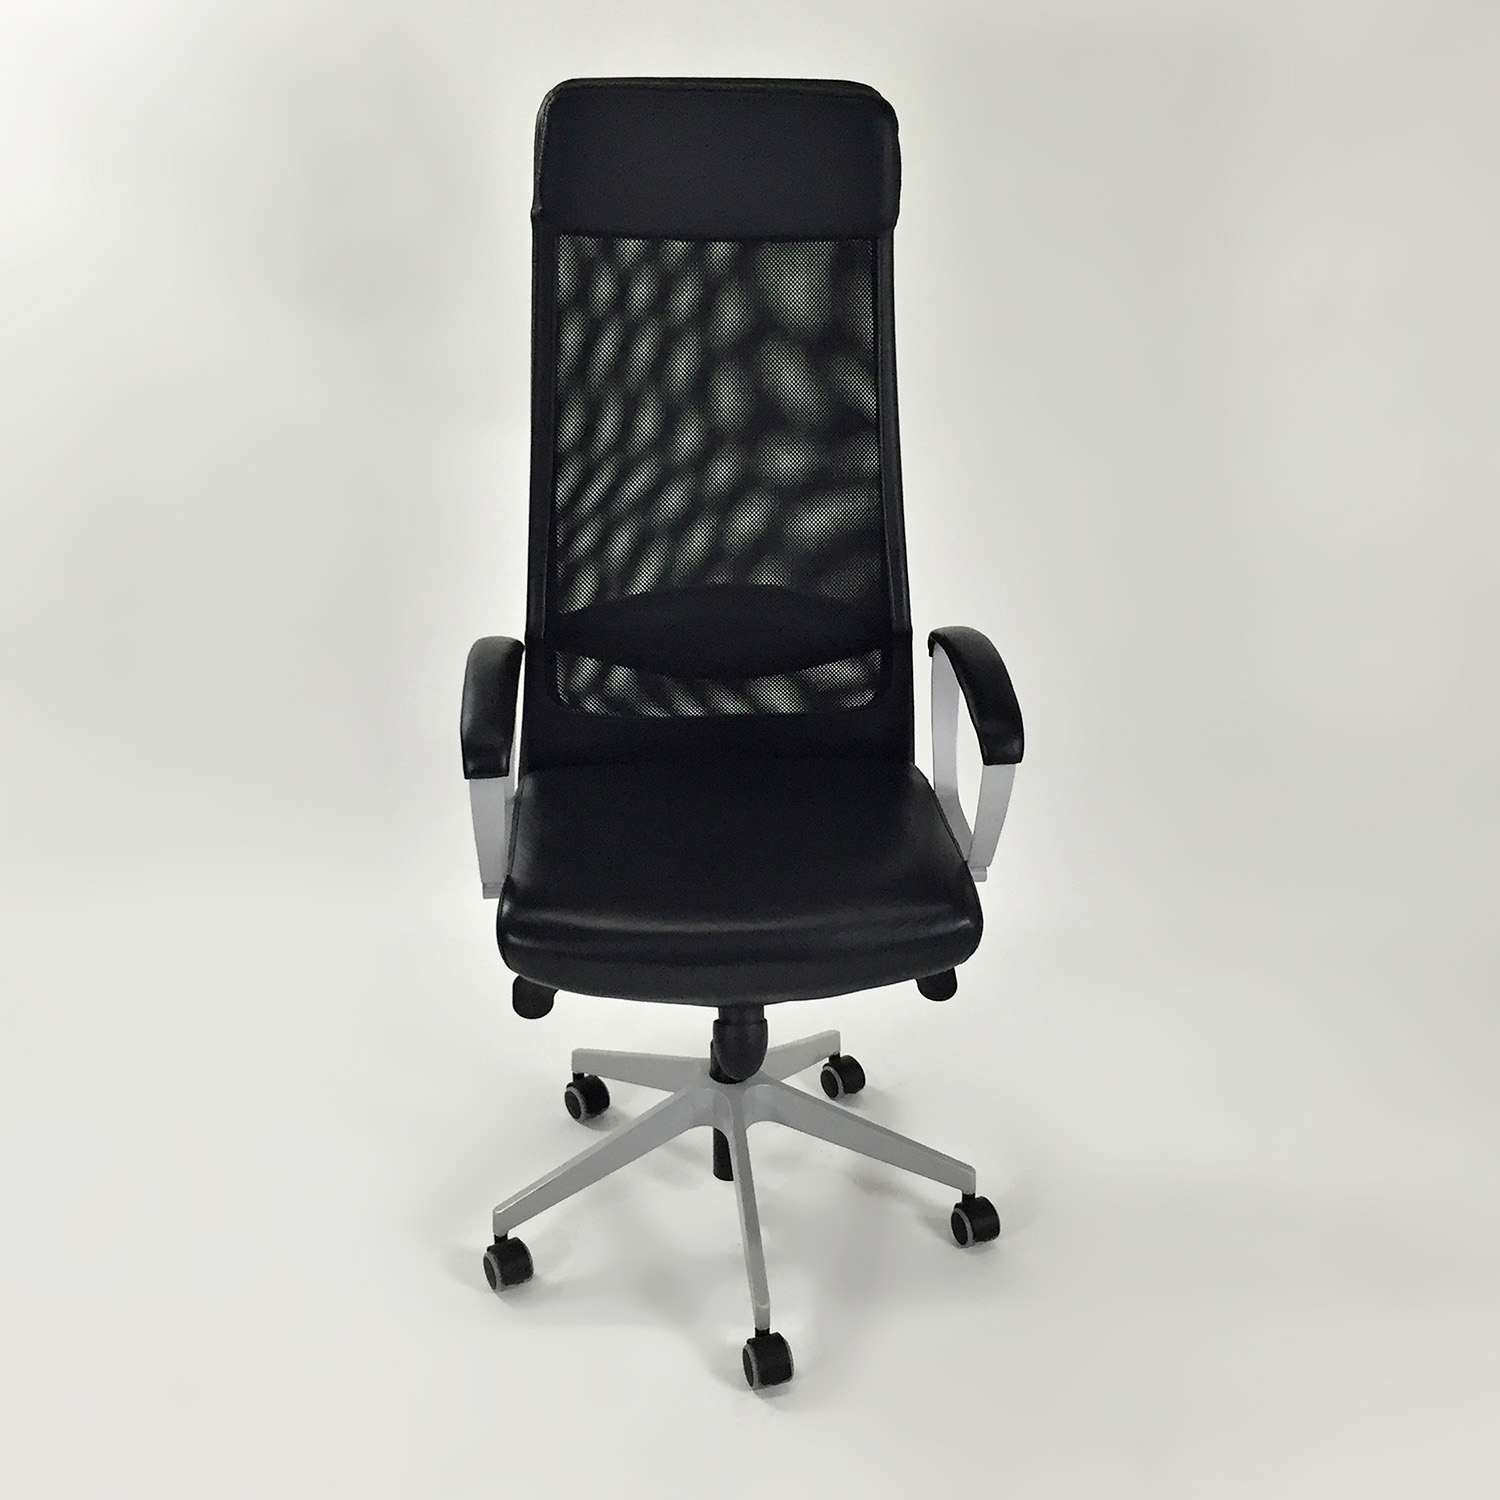 Markus Swivel Chair / Chairs